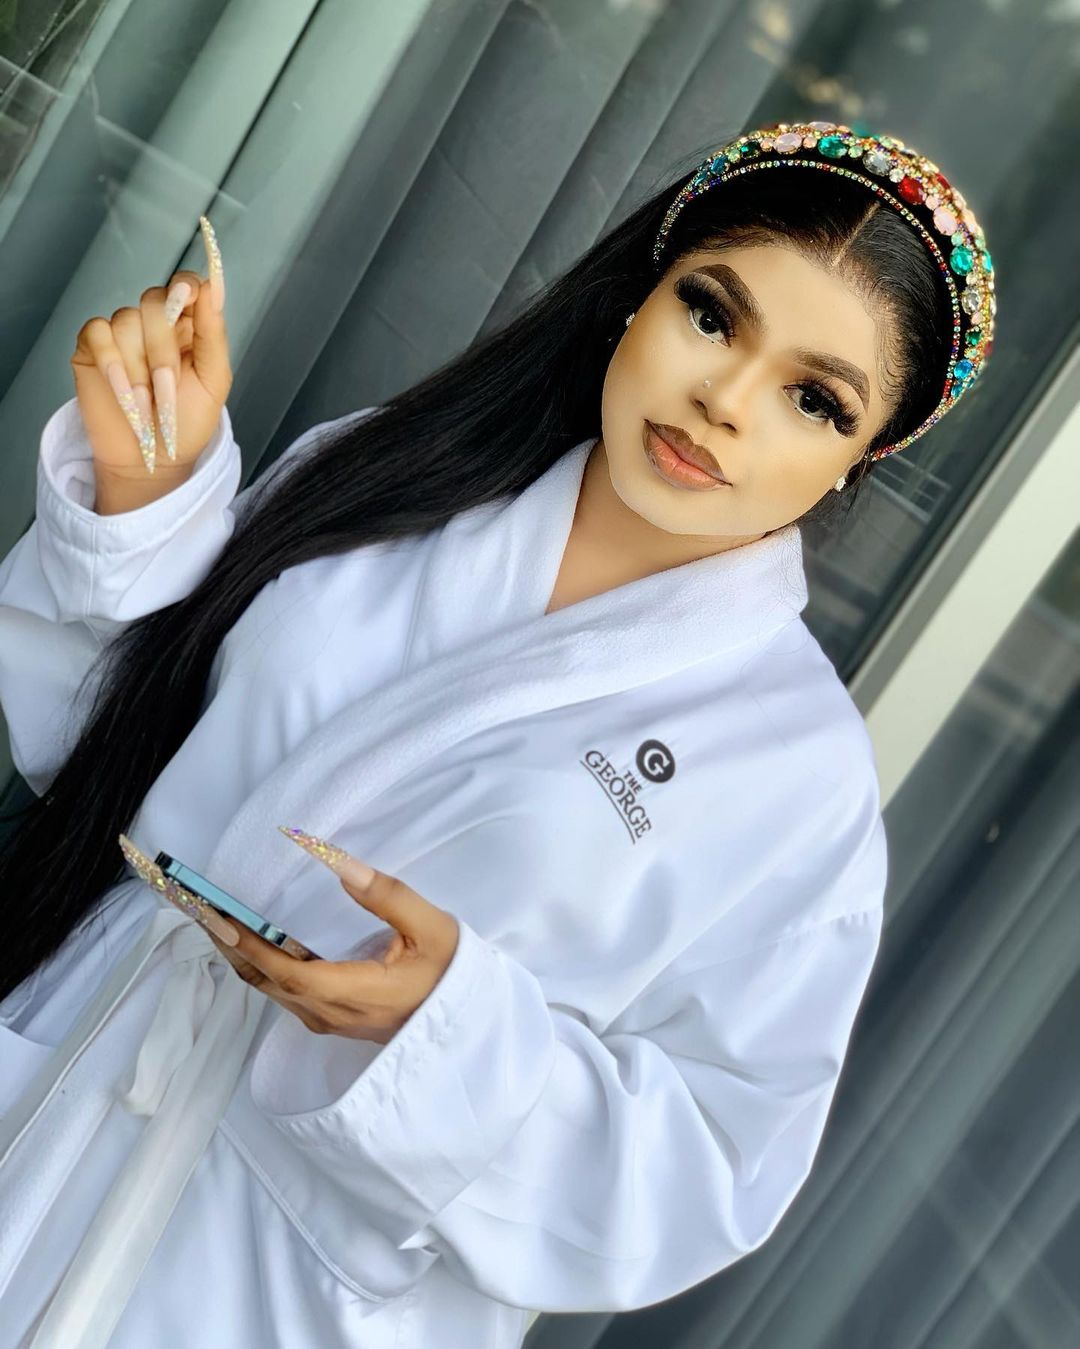 """""""Stop living a fake life for Instagram"""" - Crossdresser Michelle Page tells Bobrisky after he revealed plans for his next birthday"""